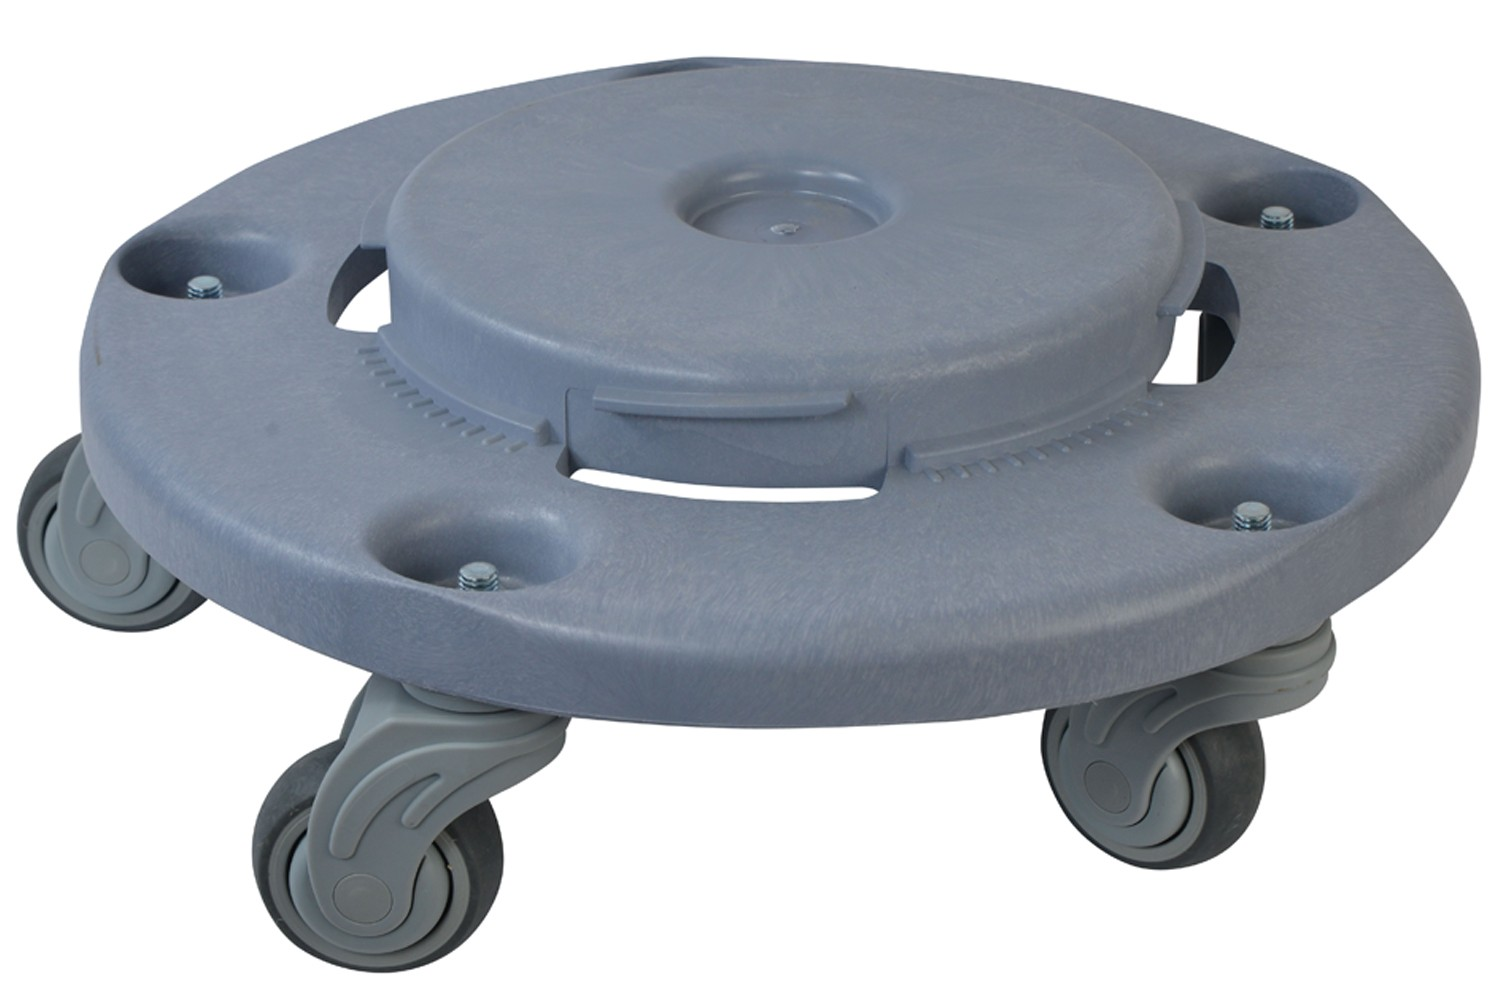 1041 Quiet Garbage Trash Can Round Dolly With Heavy Duty